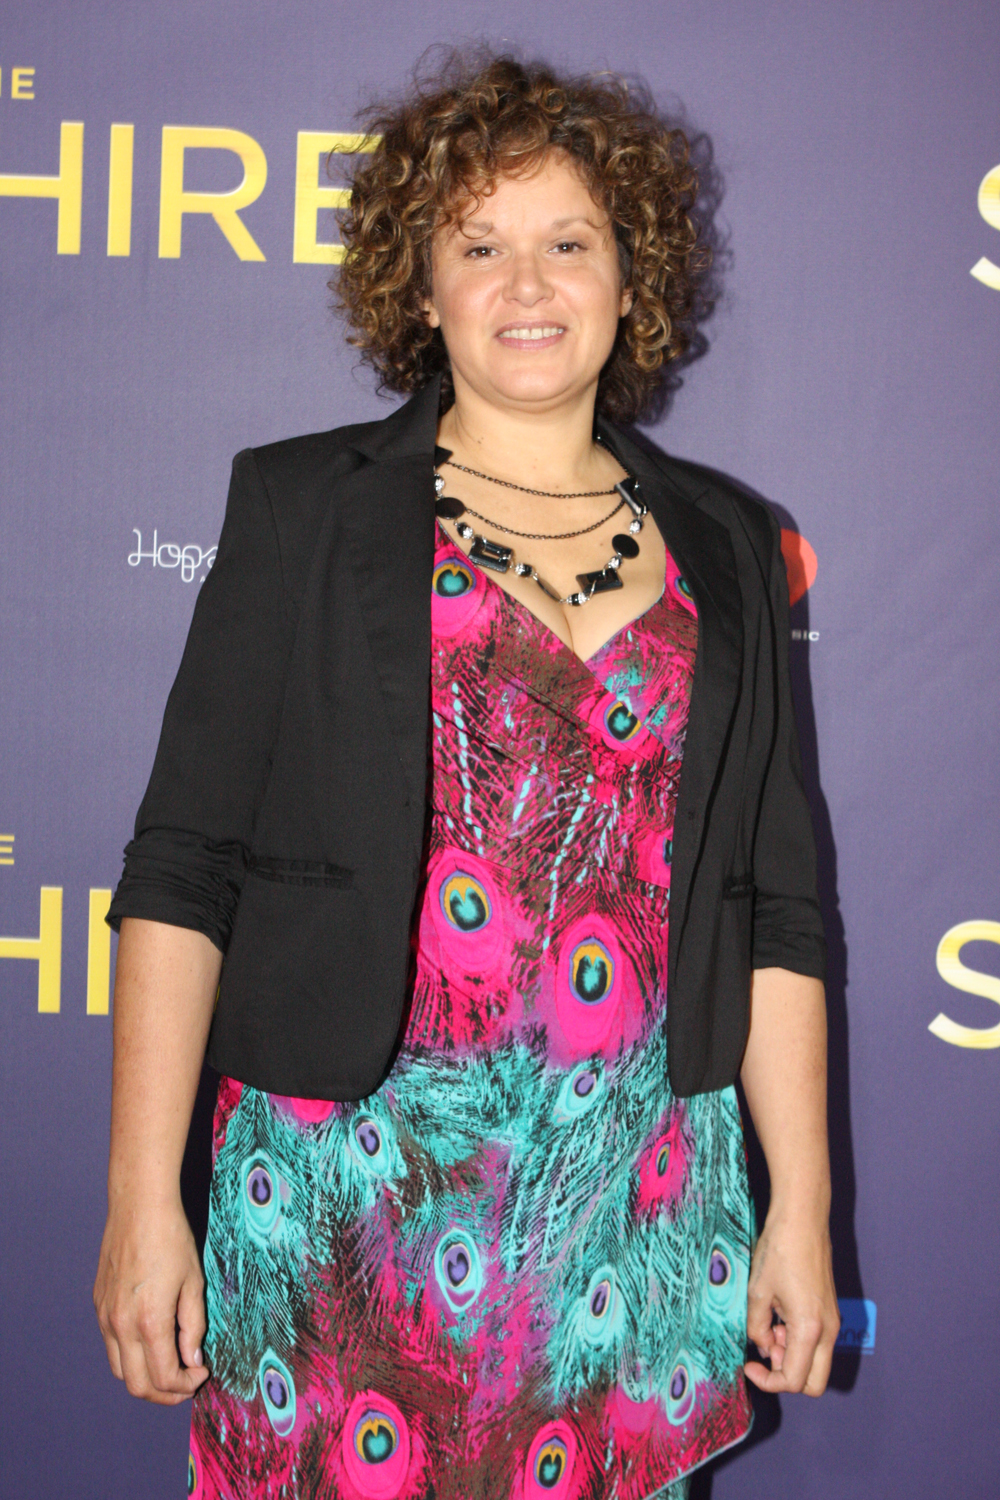 Leah purcell biography